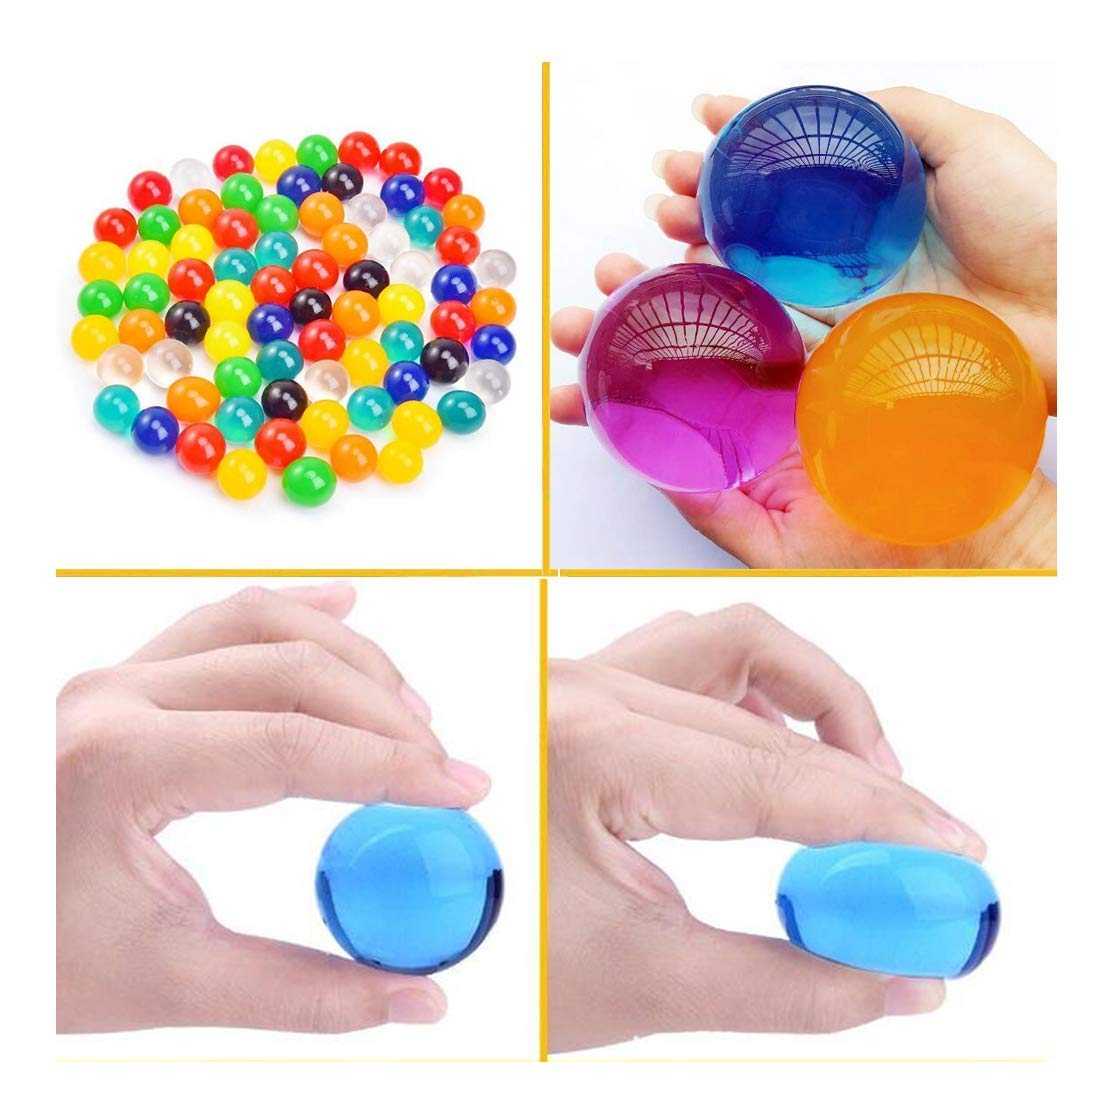 AINOLWAY Large Water Gel Beads 3 Oz Pack, Growing Water Balls Jelly Crystal for Kids Tactile Toy and Vase Filler MS-WB17224